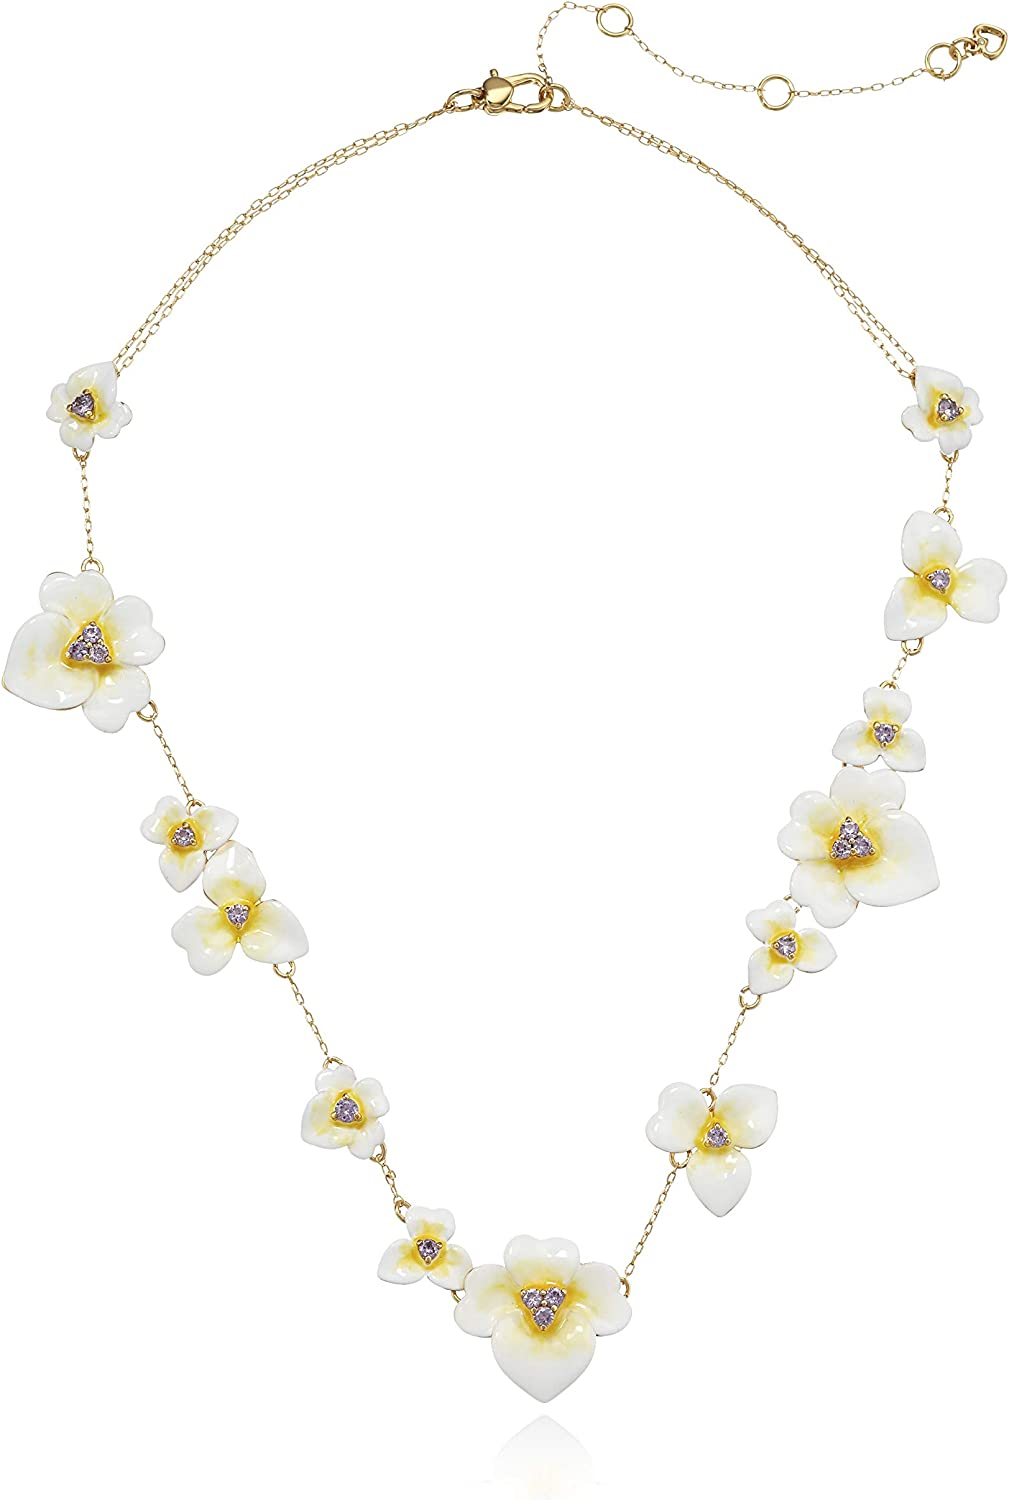 NEW Kate Spade New York Precious Regular store Enamel Necklace Pansy Scatter